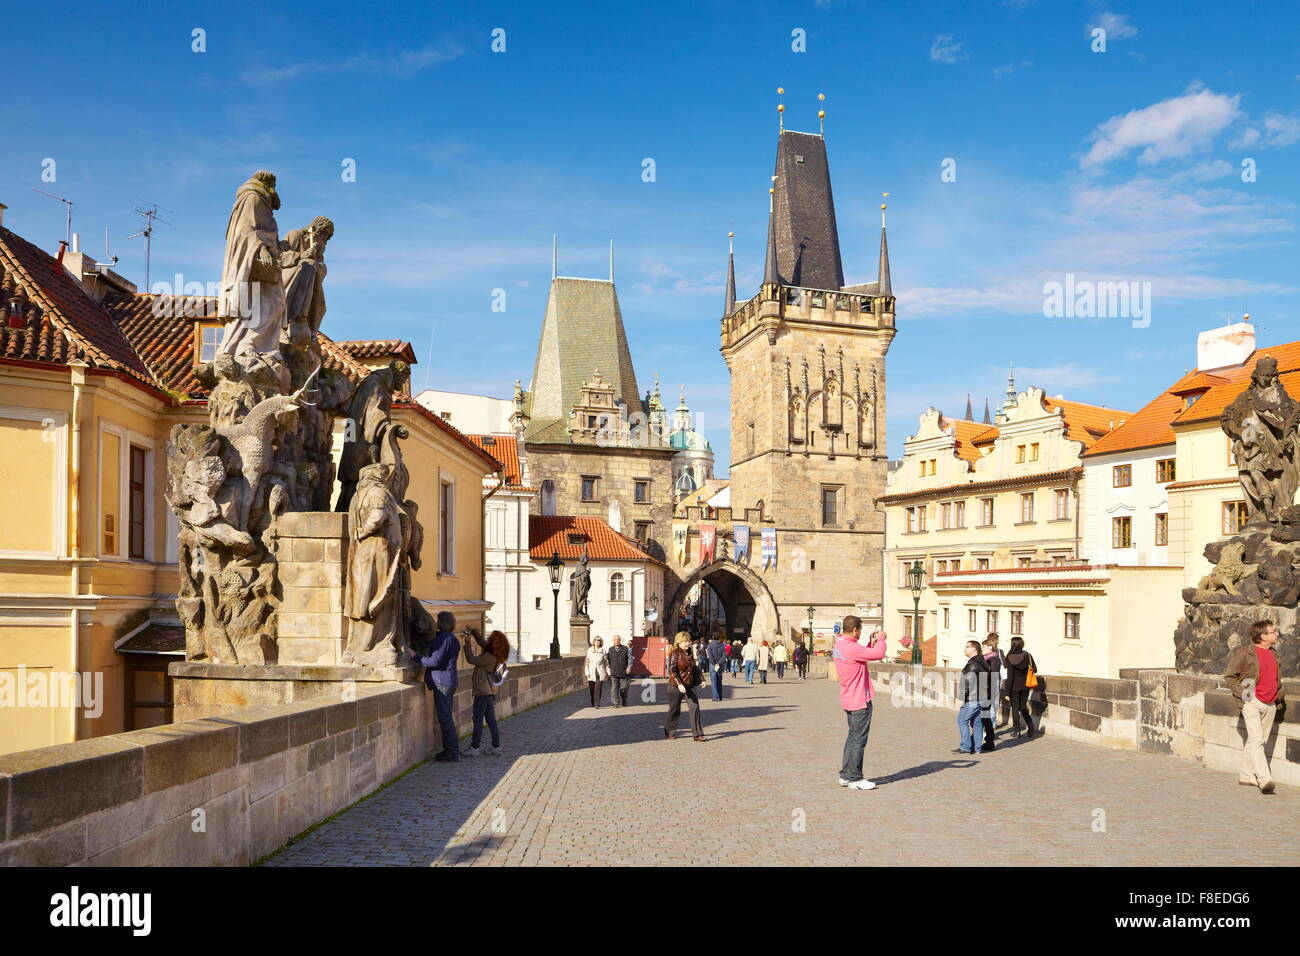 Tourists on the Charles Bridge, Prague Old Town, Czech Republic, UNESCO - Stock Image